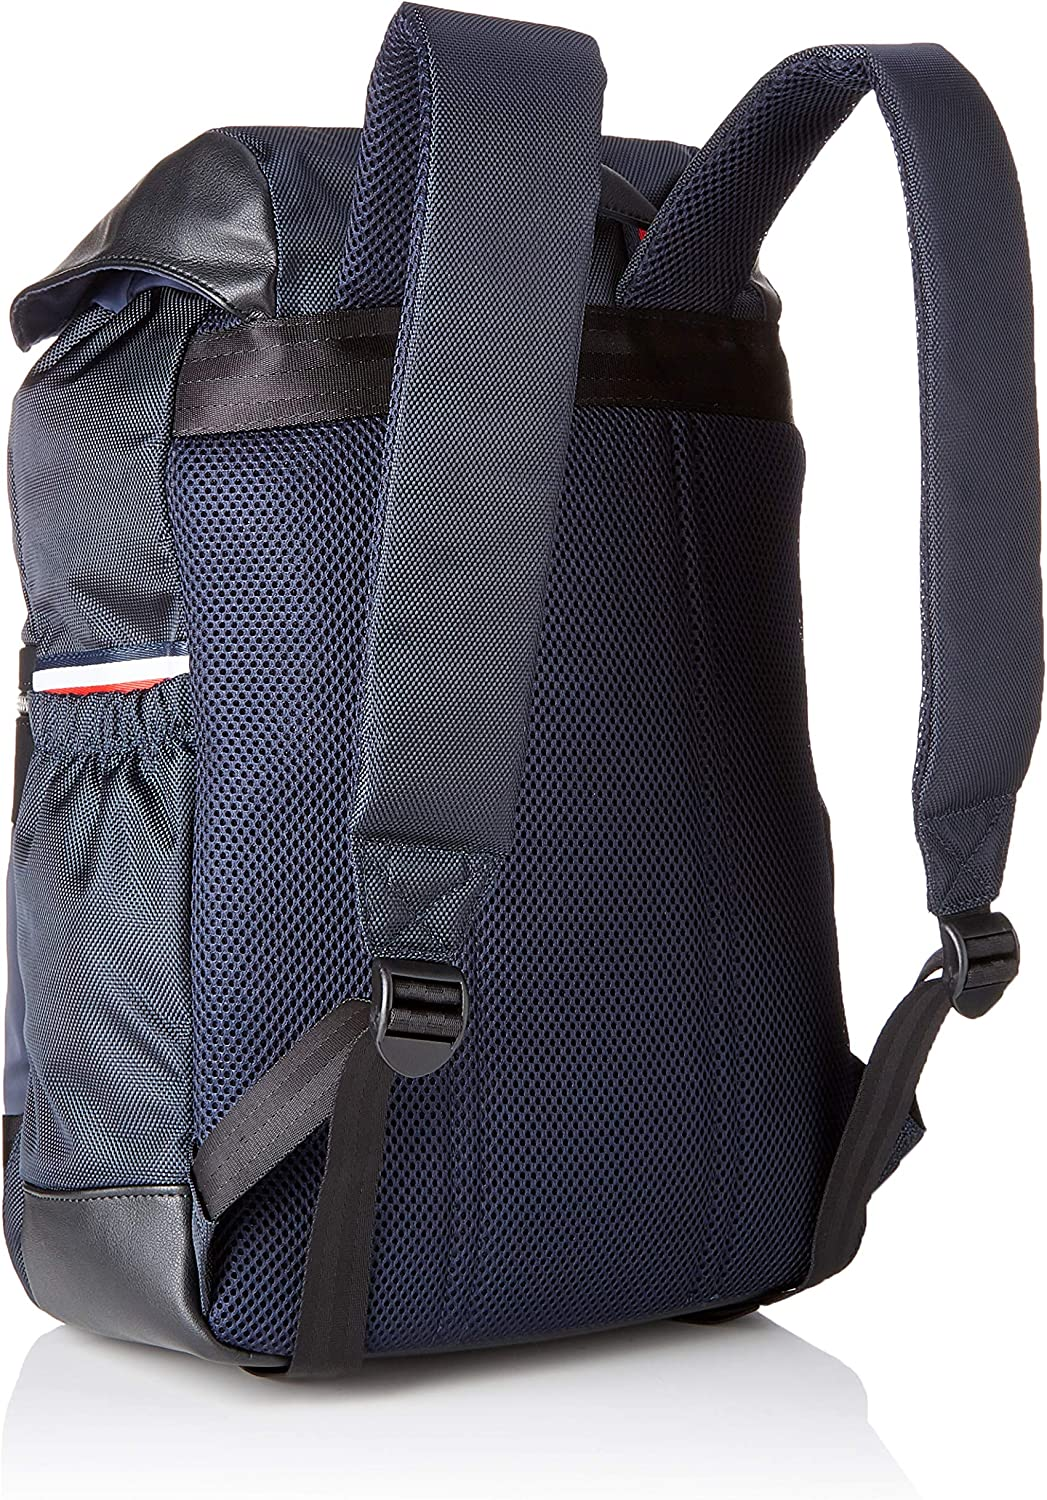 Tommy Hilfiger Homme Sac /à dos en nylon avec rabat 17x46x35 cm Bleu Nylon Mix Flap Backpack Tommy Navy 413